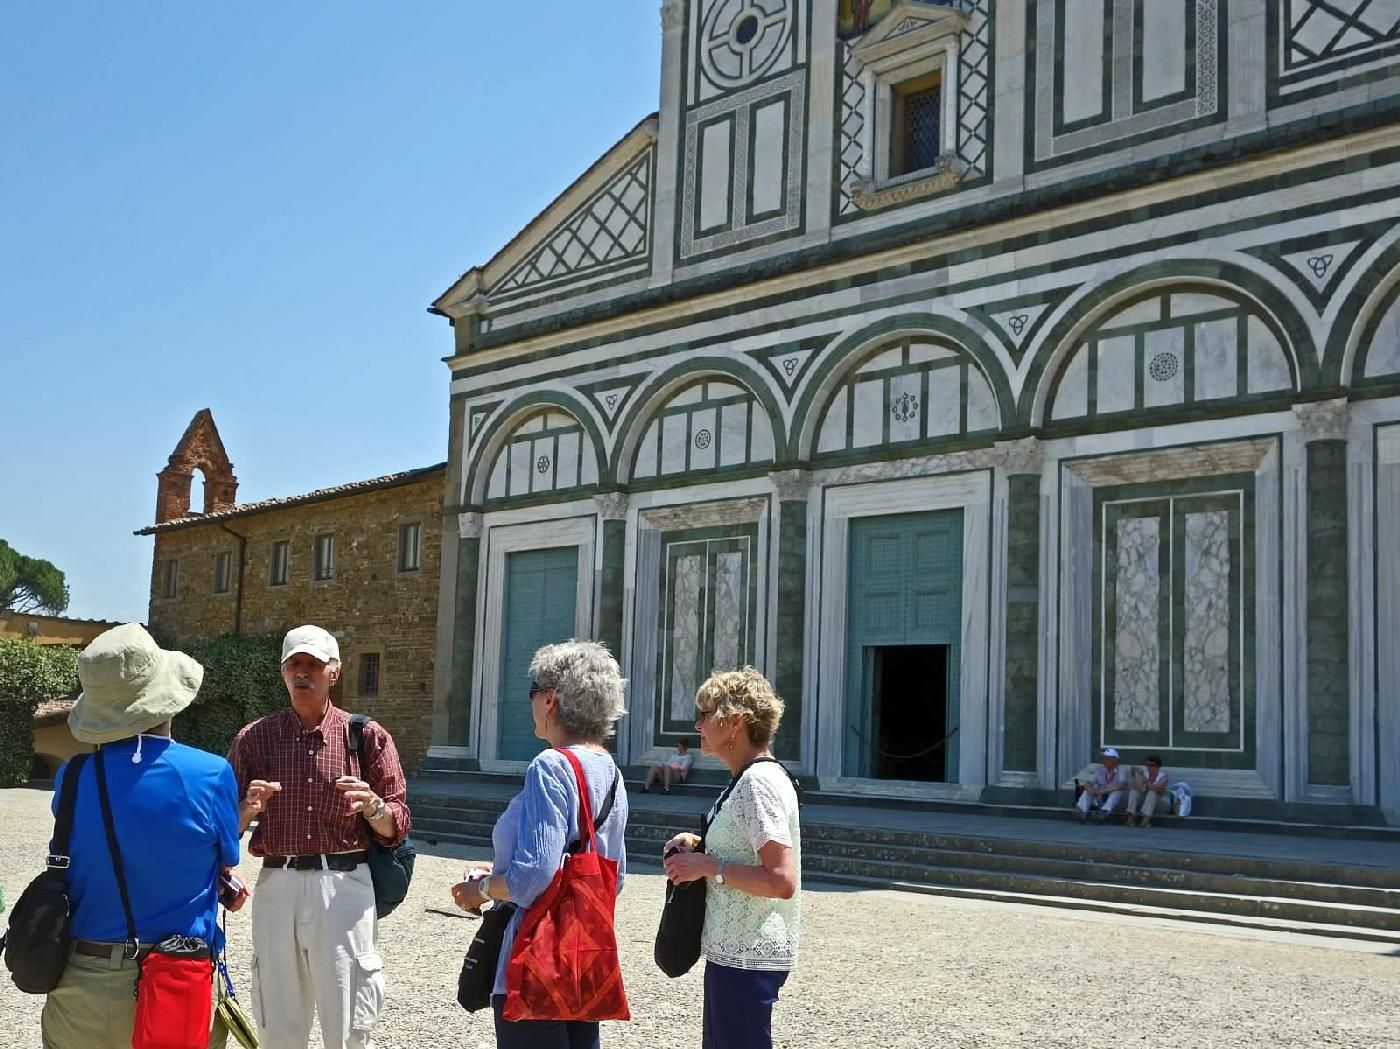 GET TO KNOW FLORENCE THROUGH ITS HISTORY AND ART